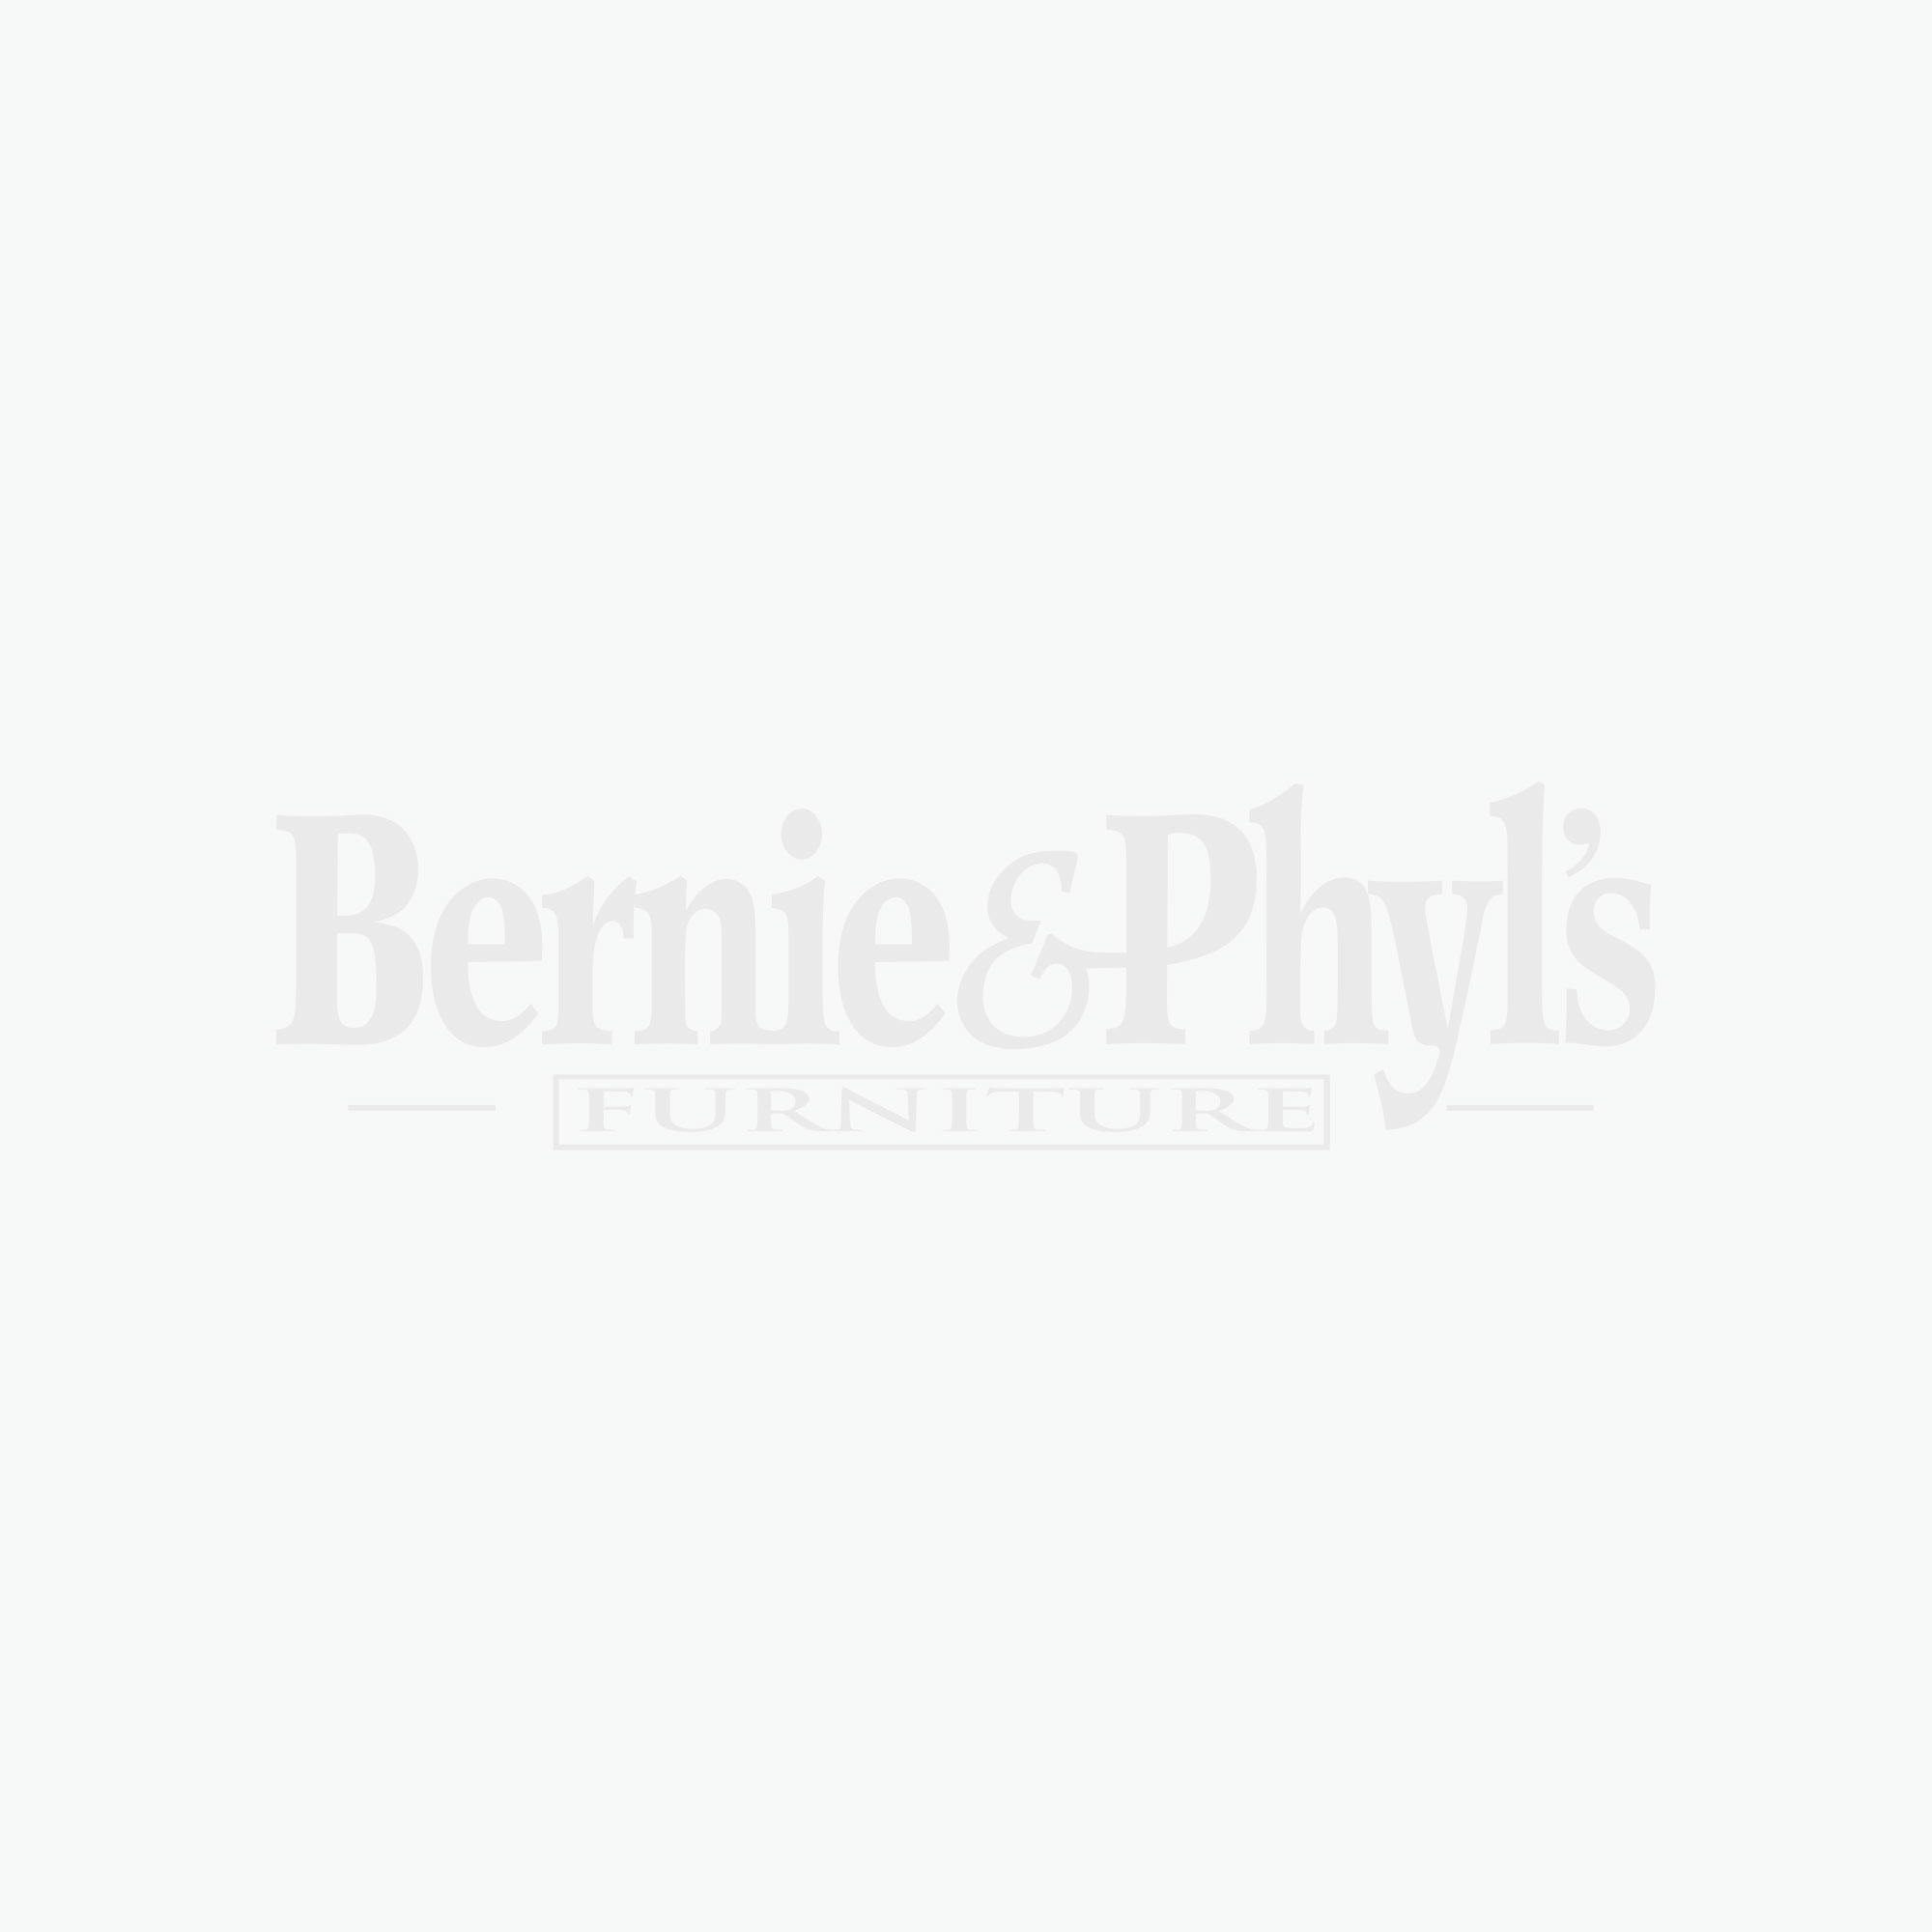 Chelmsford Entryway/Shoe Bench - White - (Set of 1) - BC4014 - by Southern Enterprises